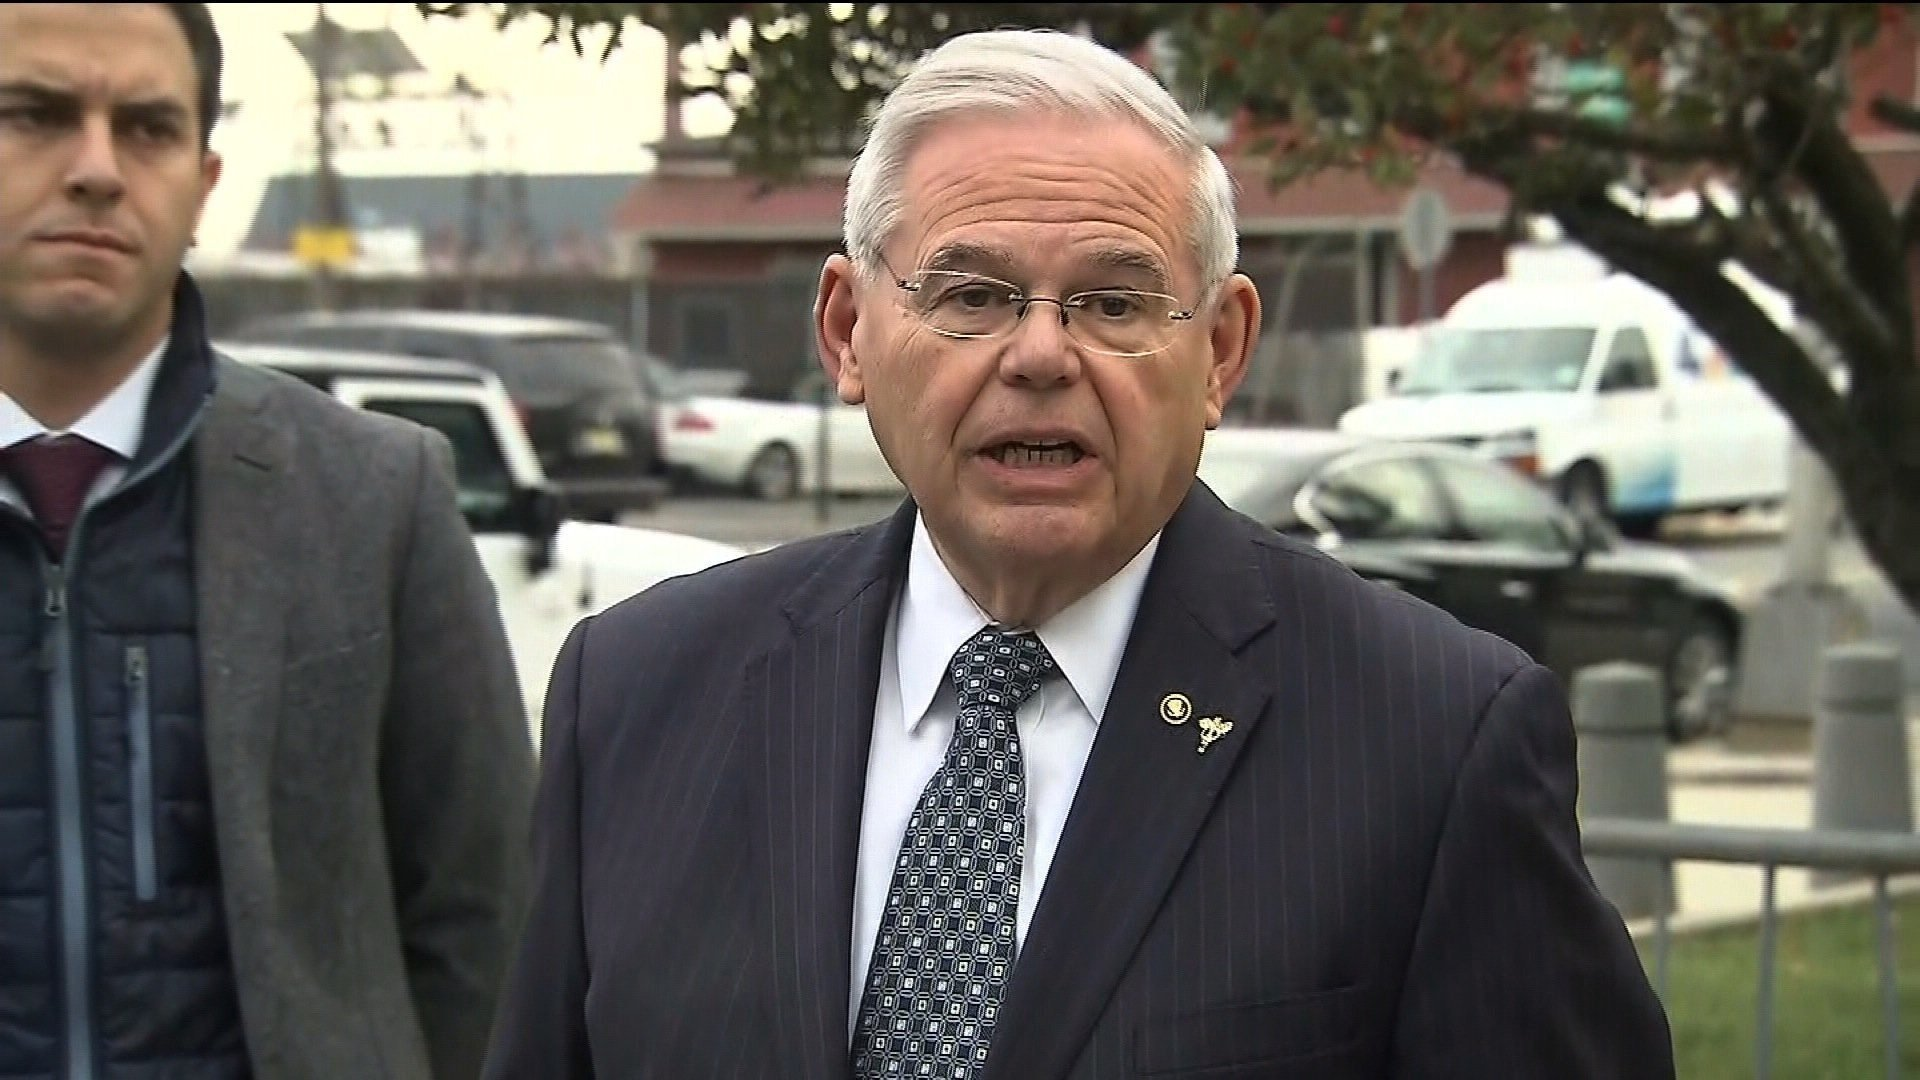 The Justice Department Wednesday filed to dismiss its remaining charges against Sen. Bob Menendez likely bringing the legal case against the New Jersey Democrat to a close